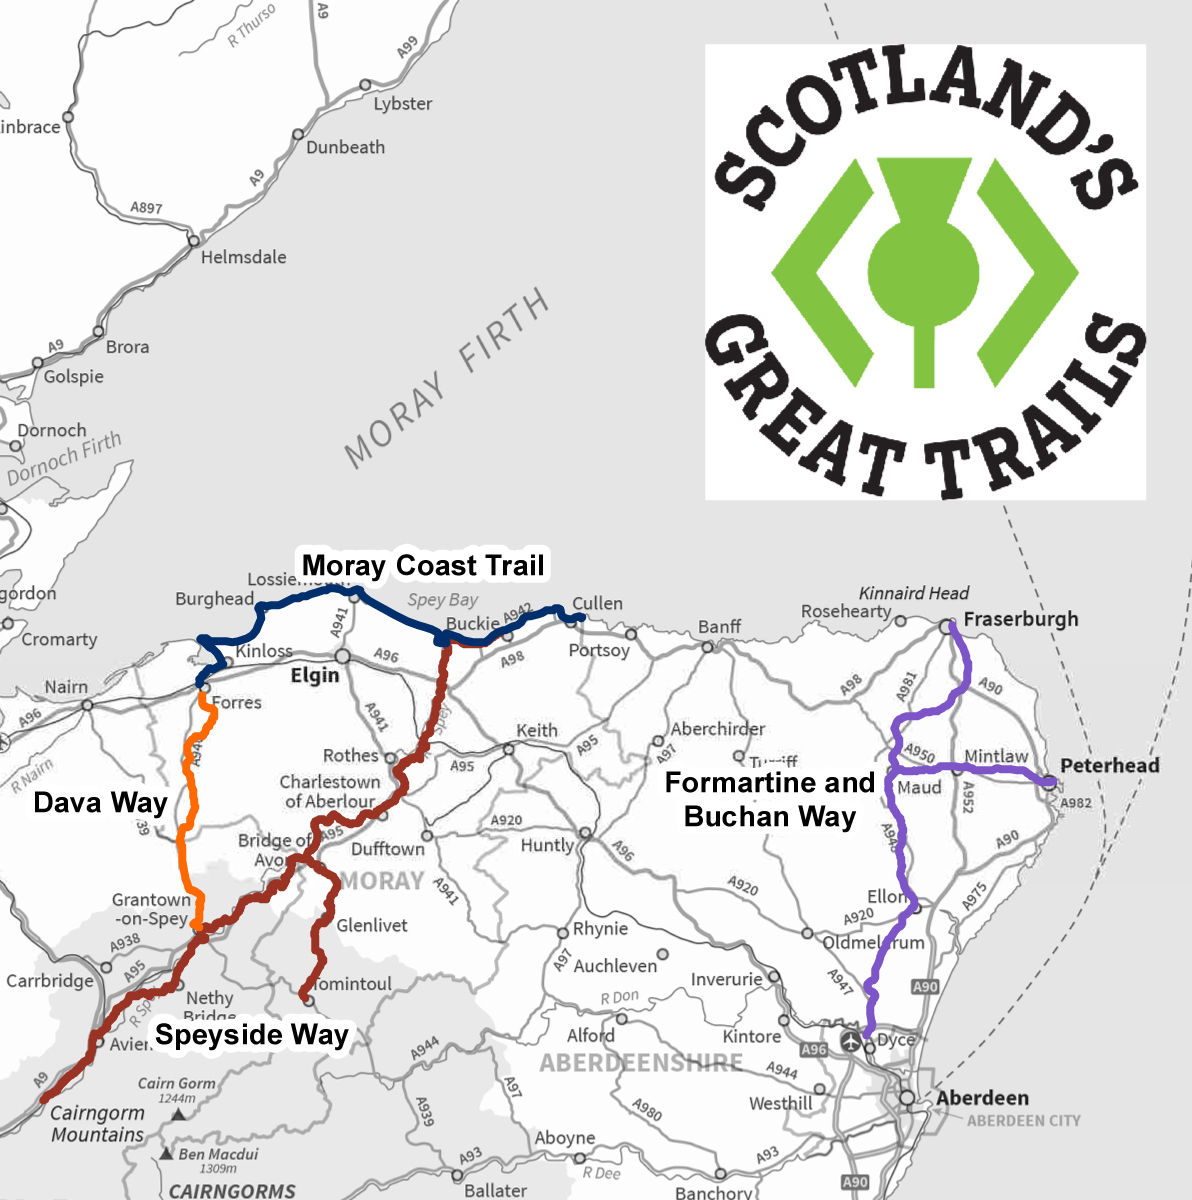 Scotland's Great Trails map - section for illustration purposes. ©SNH. For information on reproduction rights contact the Scottish Natural Heritage Image Library on Tel. 01738 444177 or www.nature.scot